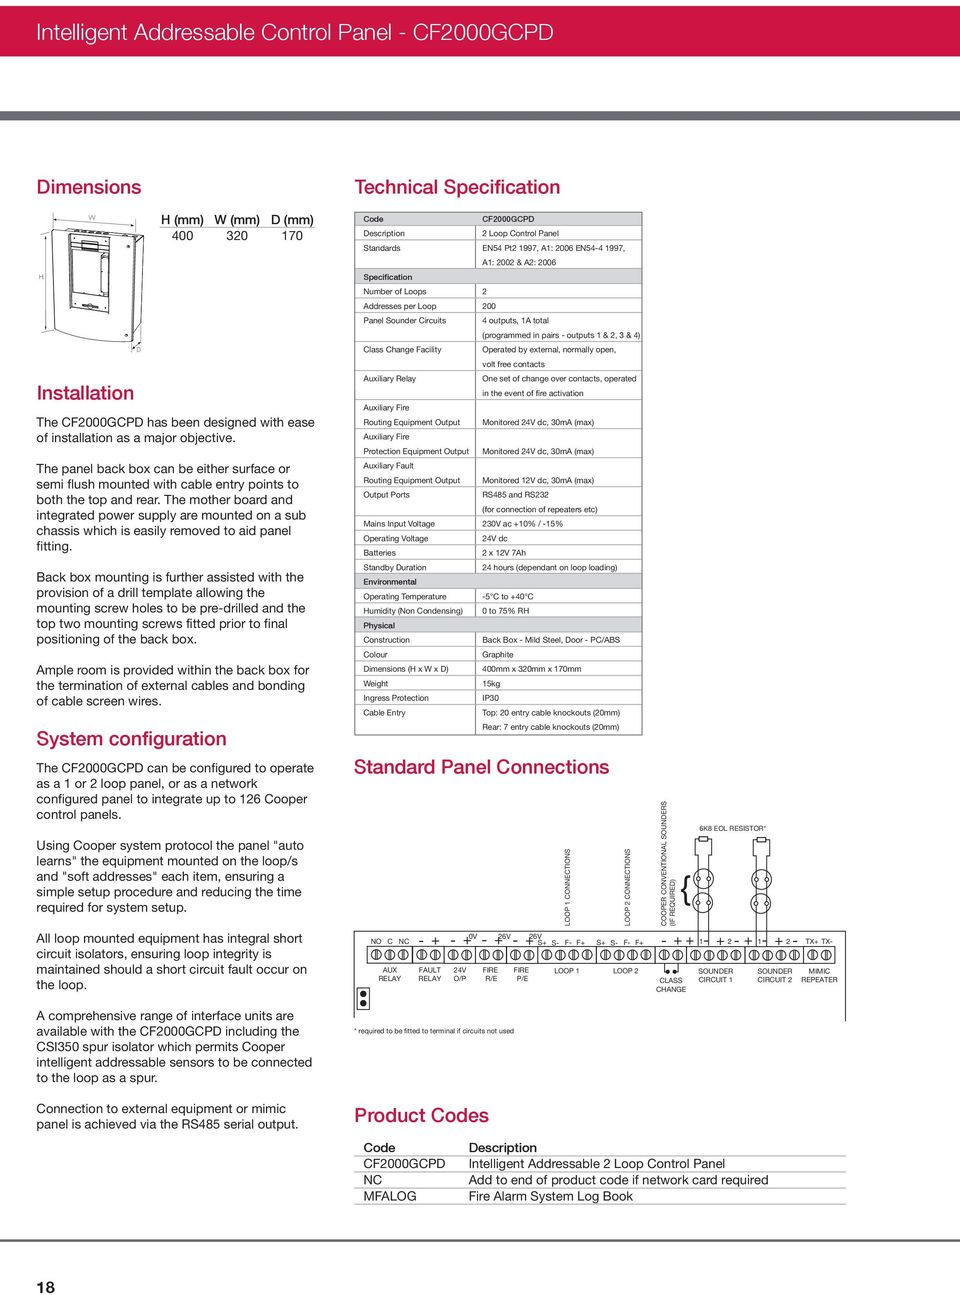 C E R T I F At O N Lpcb B A D P V L S Intelligent Fire Alarm System Schematic Diagram The Mother Board And Integrated Power Supply Are Mounted On Sub Chassis Which Is Easily